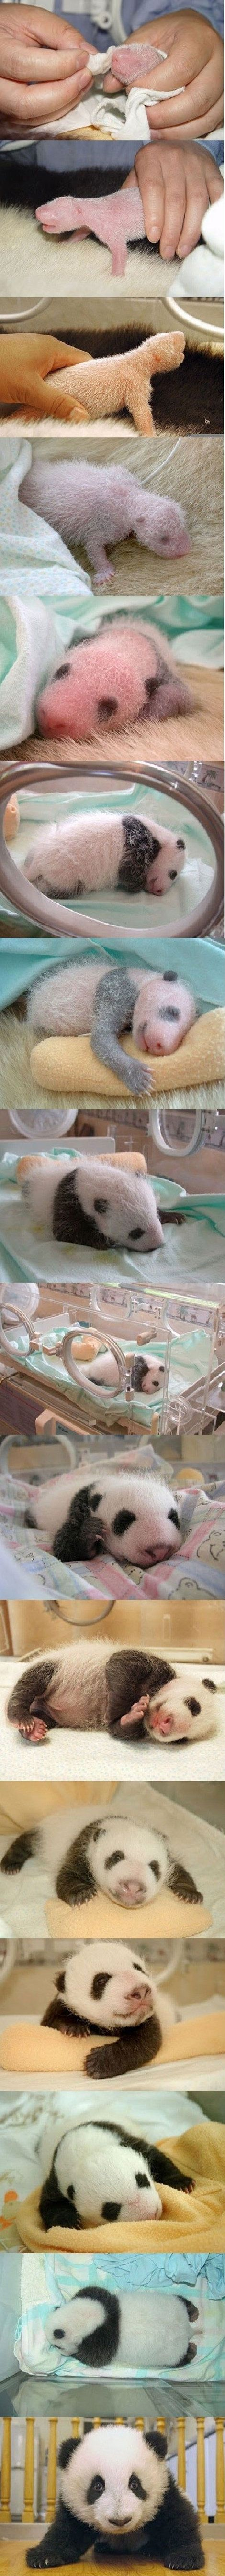 Watch its growth in Pandavision!